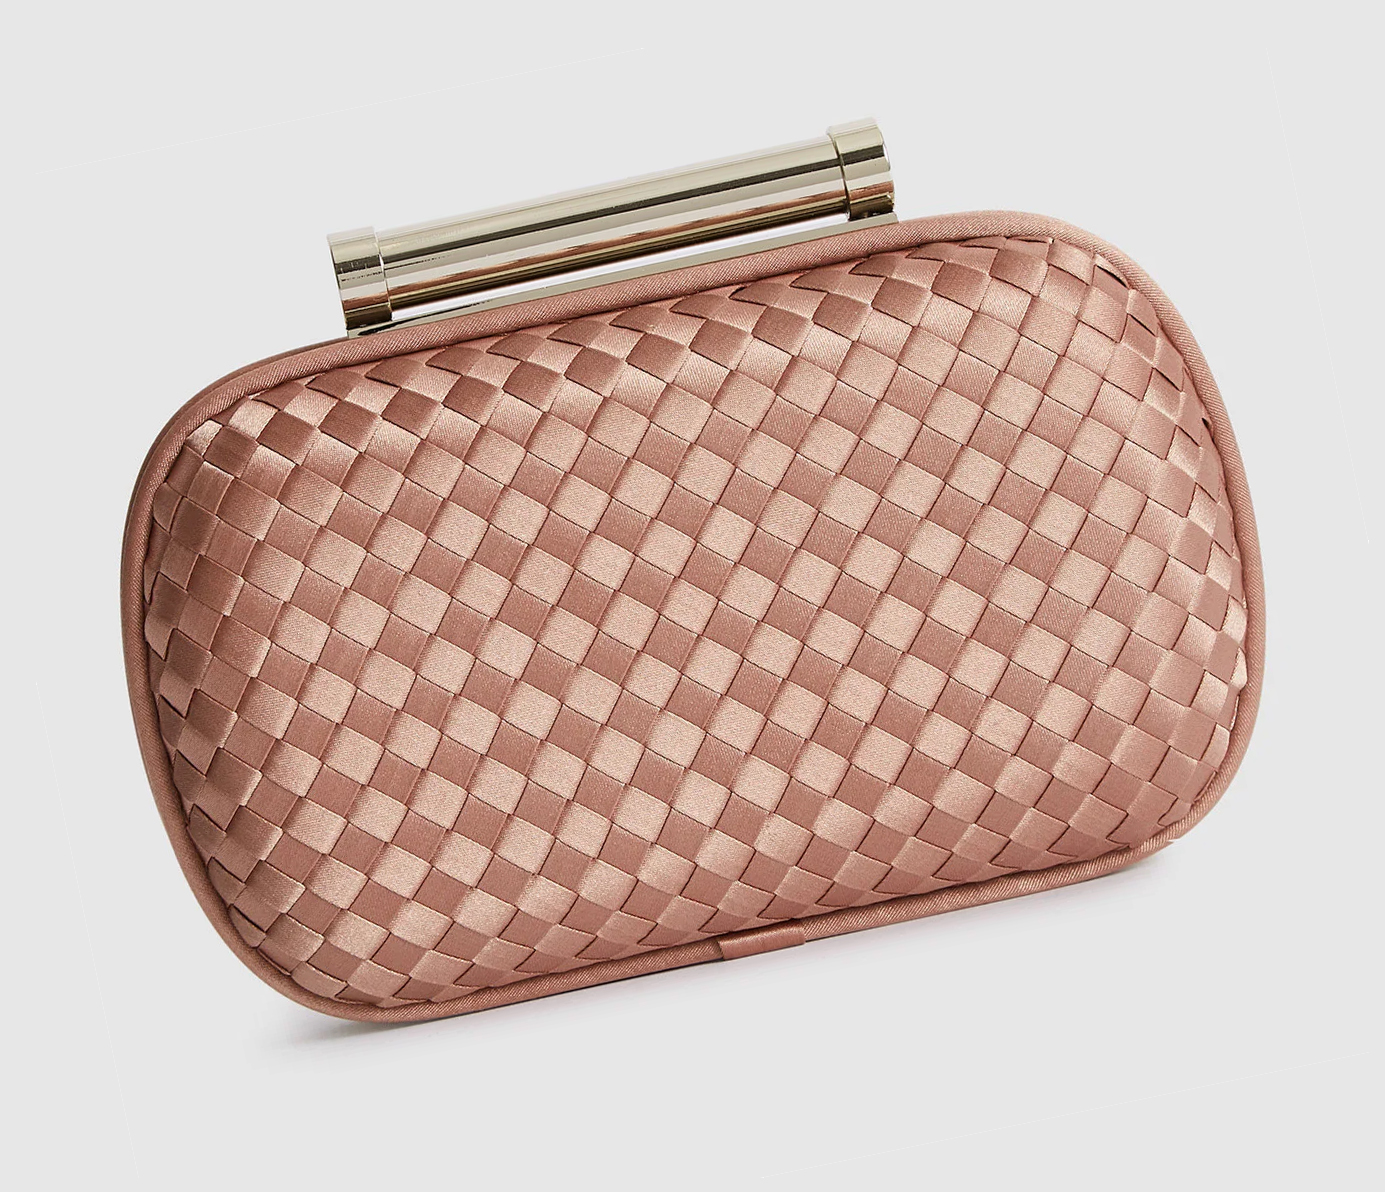 Reiss Nude Clutch Bag 2020. Rose Gold Clutch Bags 2020. Wedding Guest Outfits. Wedding Guest Outfits Ladies. Rose Gold Wedding Mother of the Bride outfits 2020. Mother of the Groom Outfits 2020